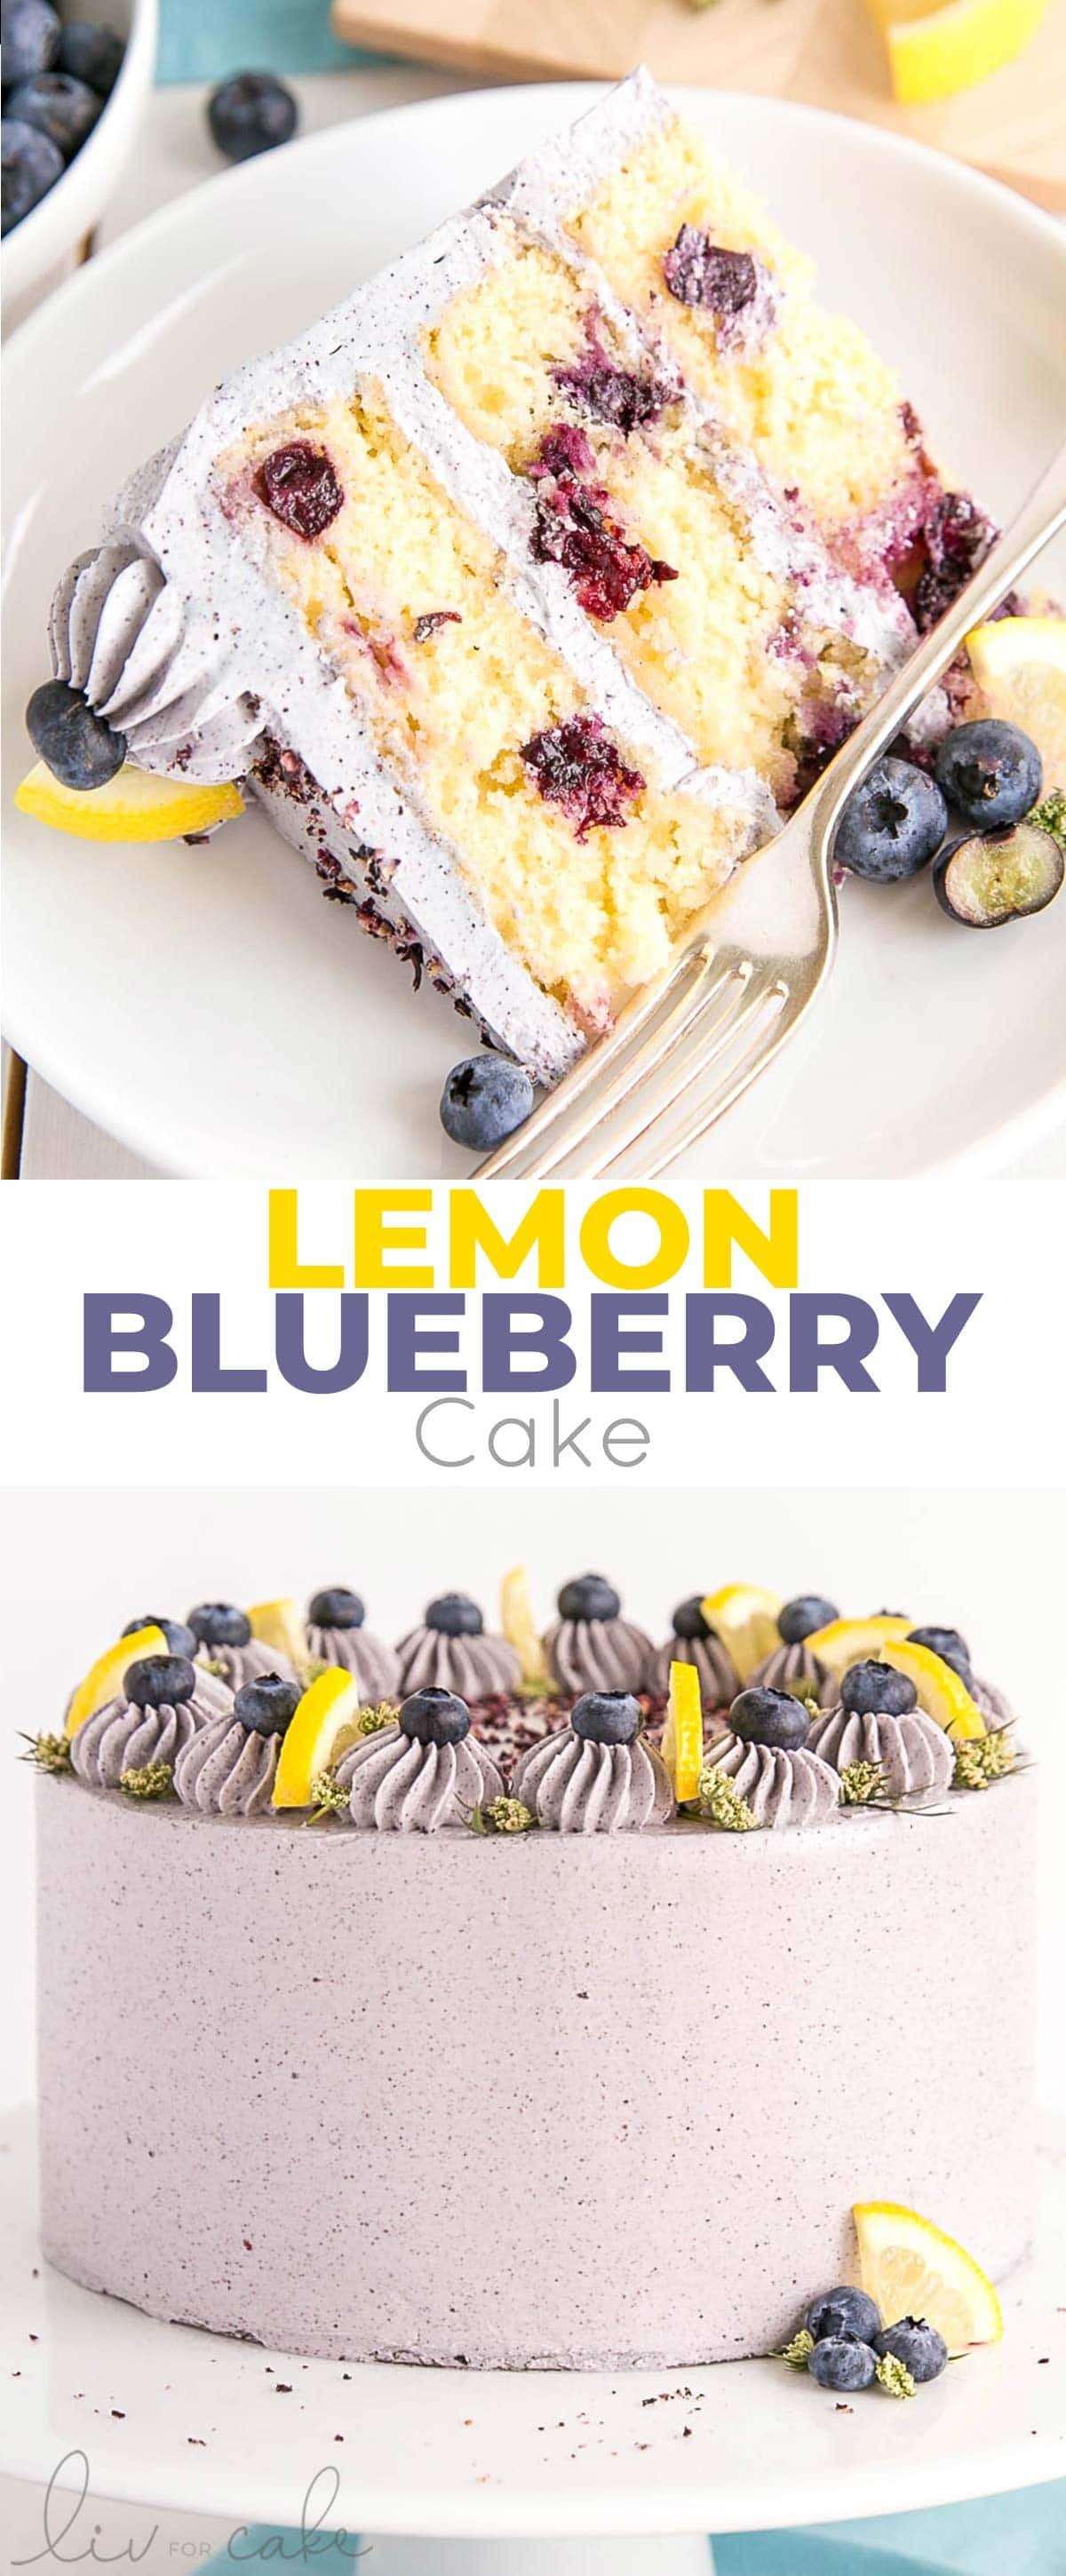 Lemon Blueberry Cake photo collage